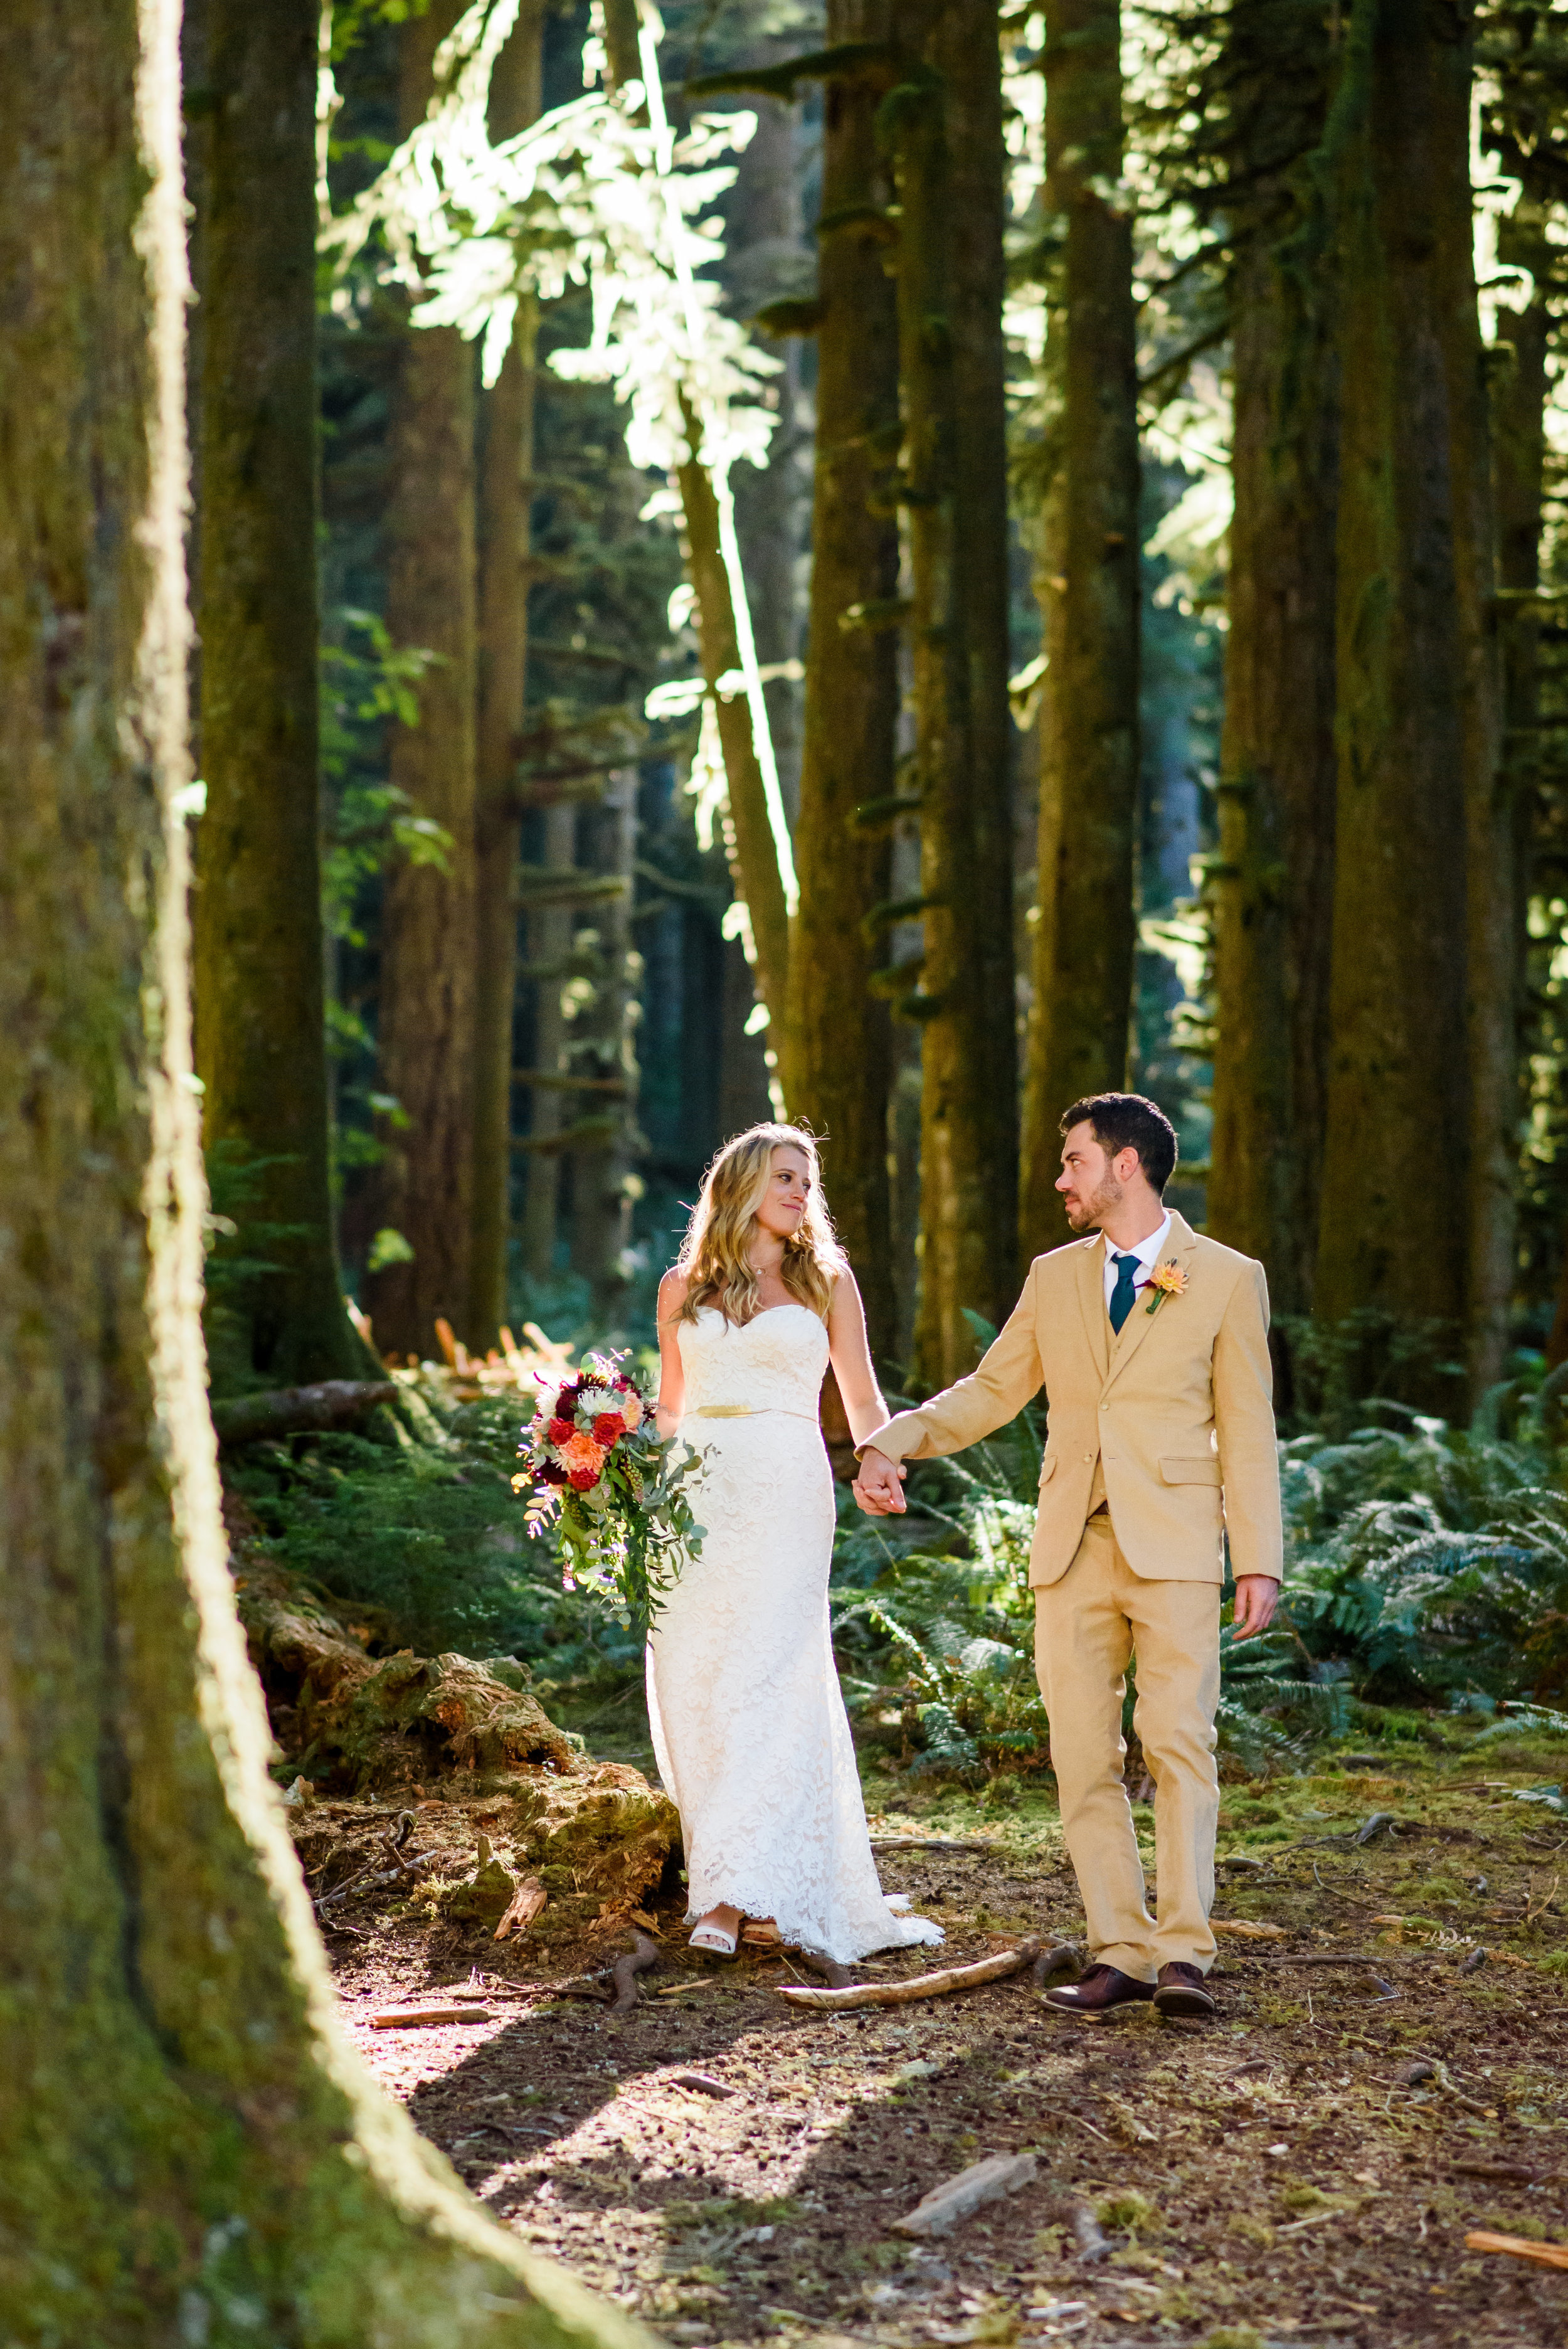 M + S: Silver Falls State Park